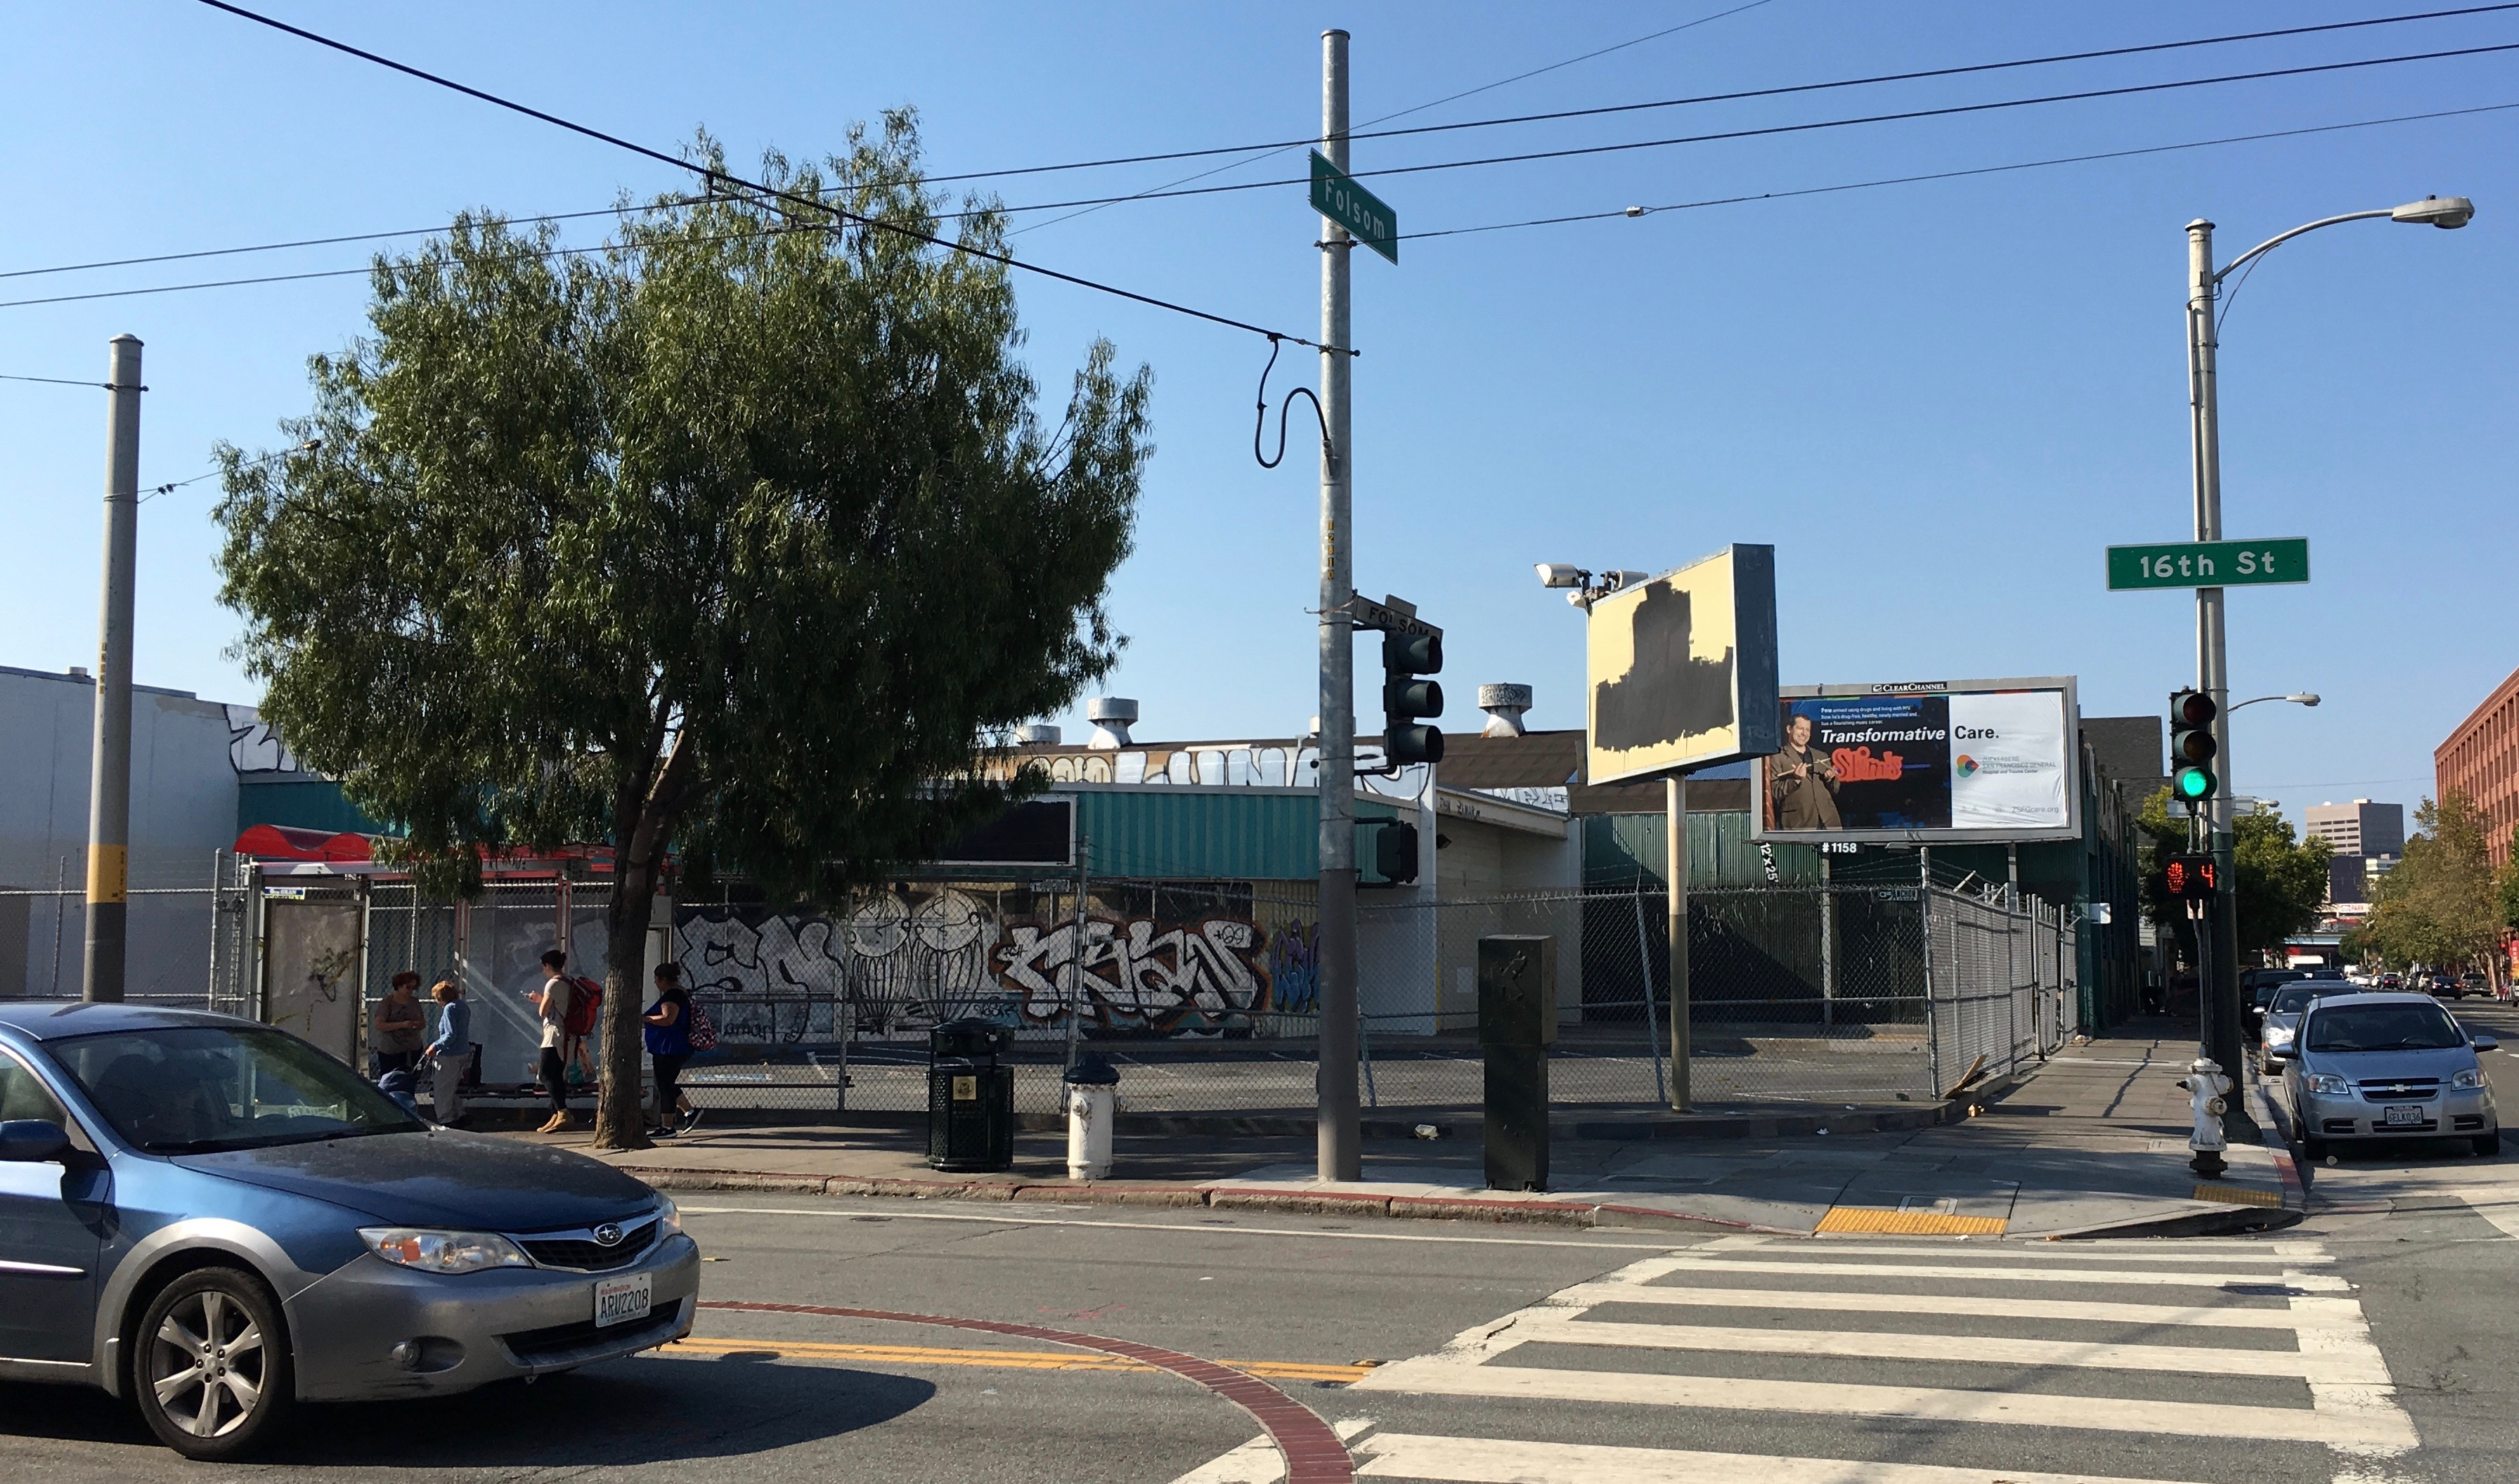 New 140-Unit Affordable Housing Project Coming to Mission District